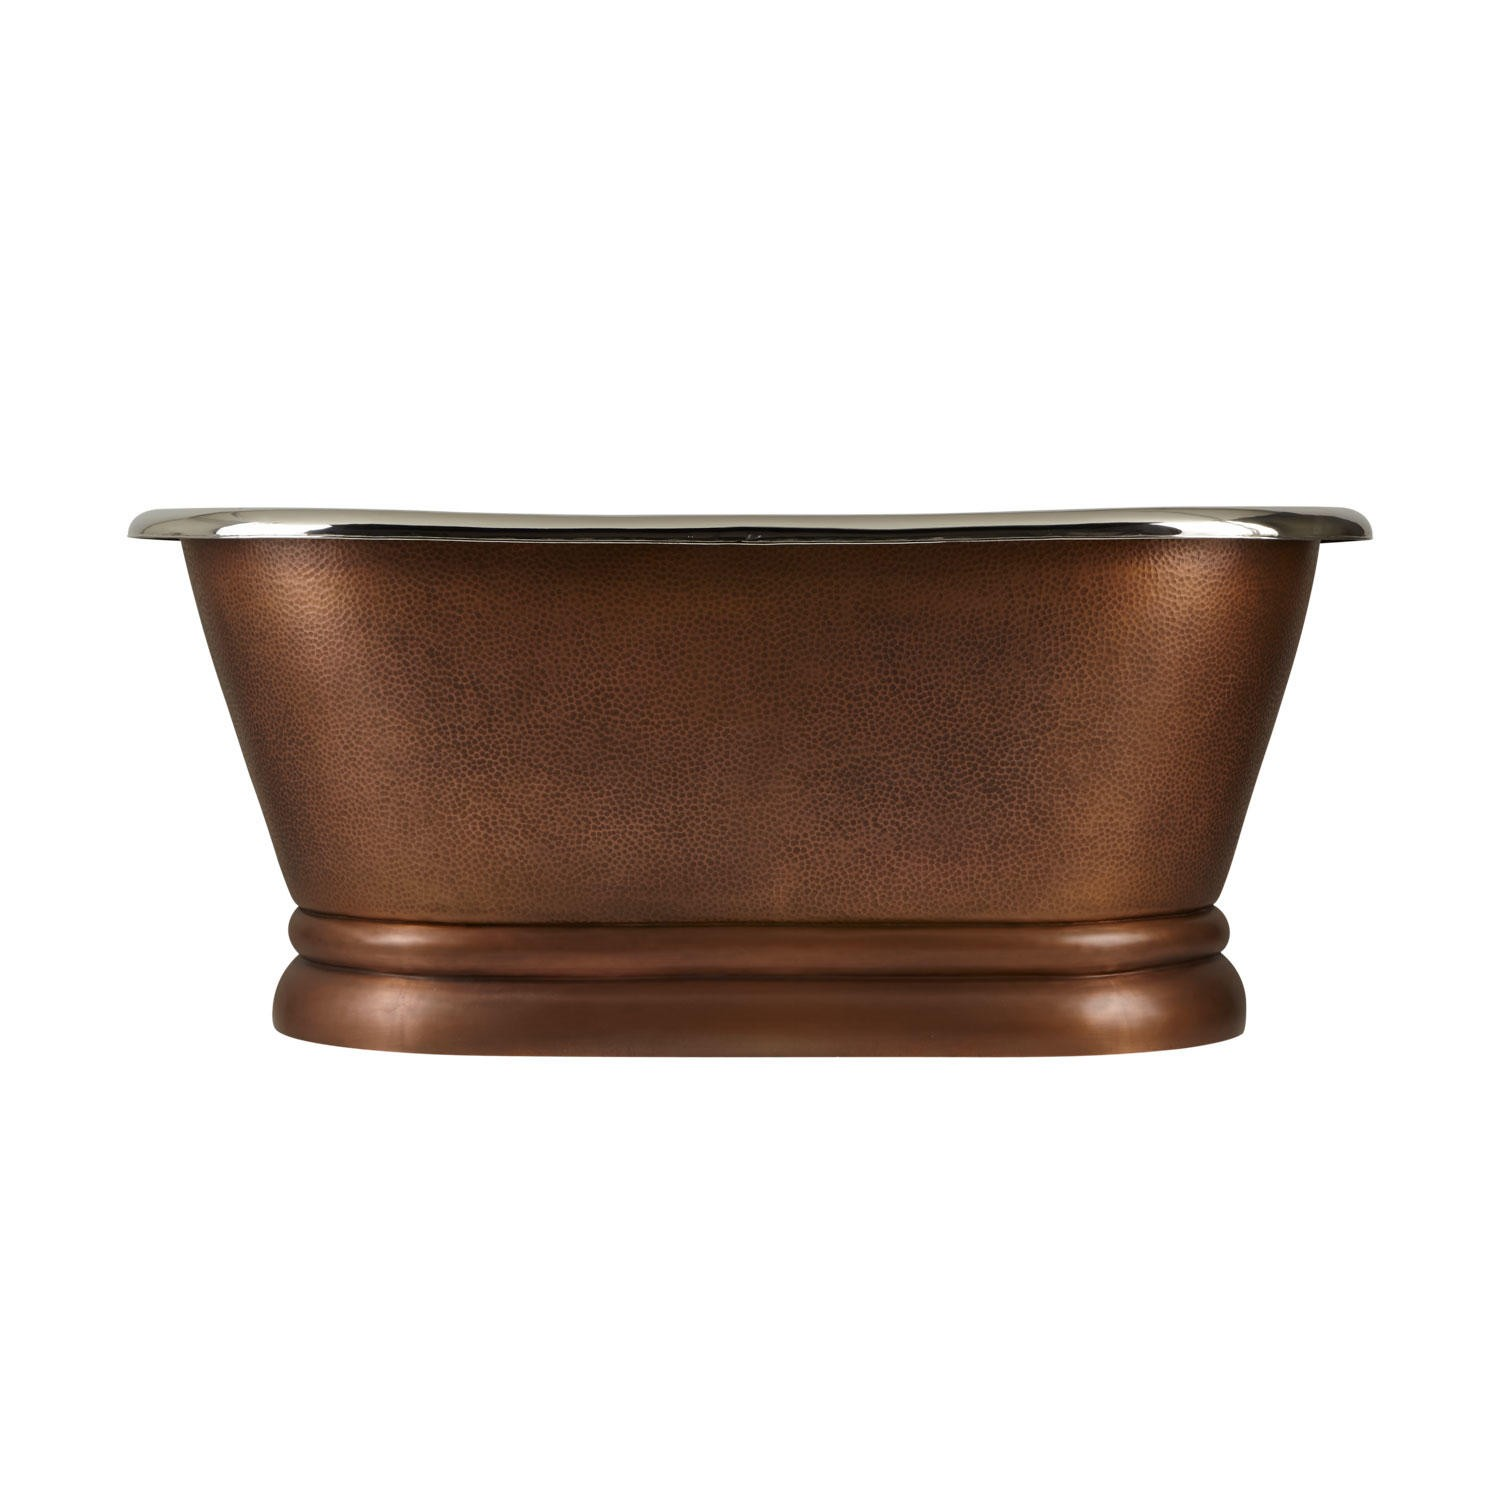 Copper Pedestal Tub Nickel Interiors - Coppersmith Creations